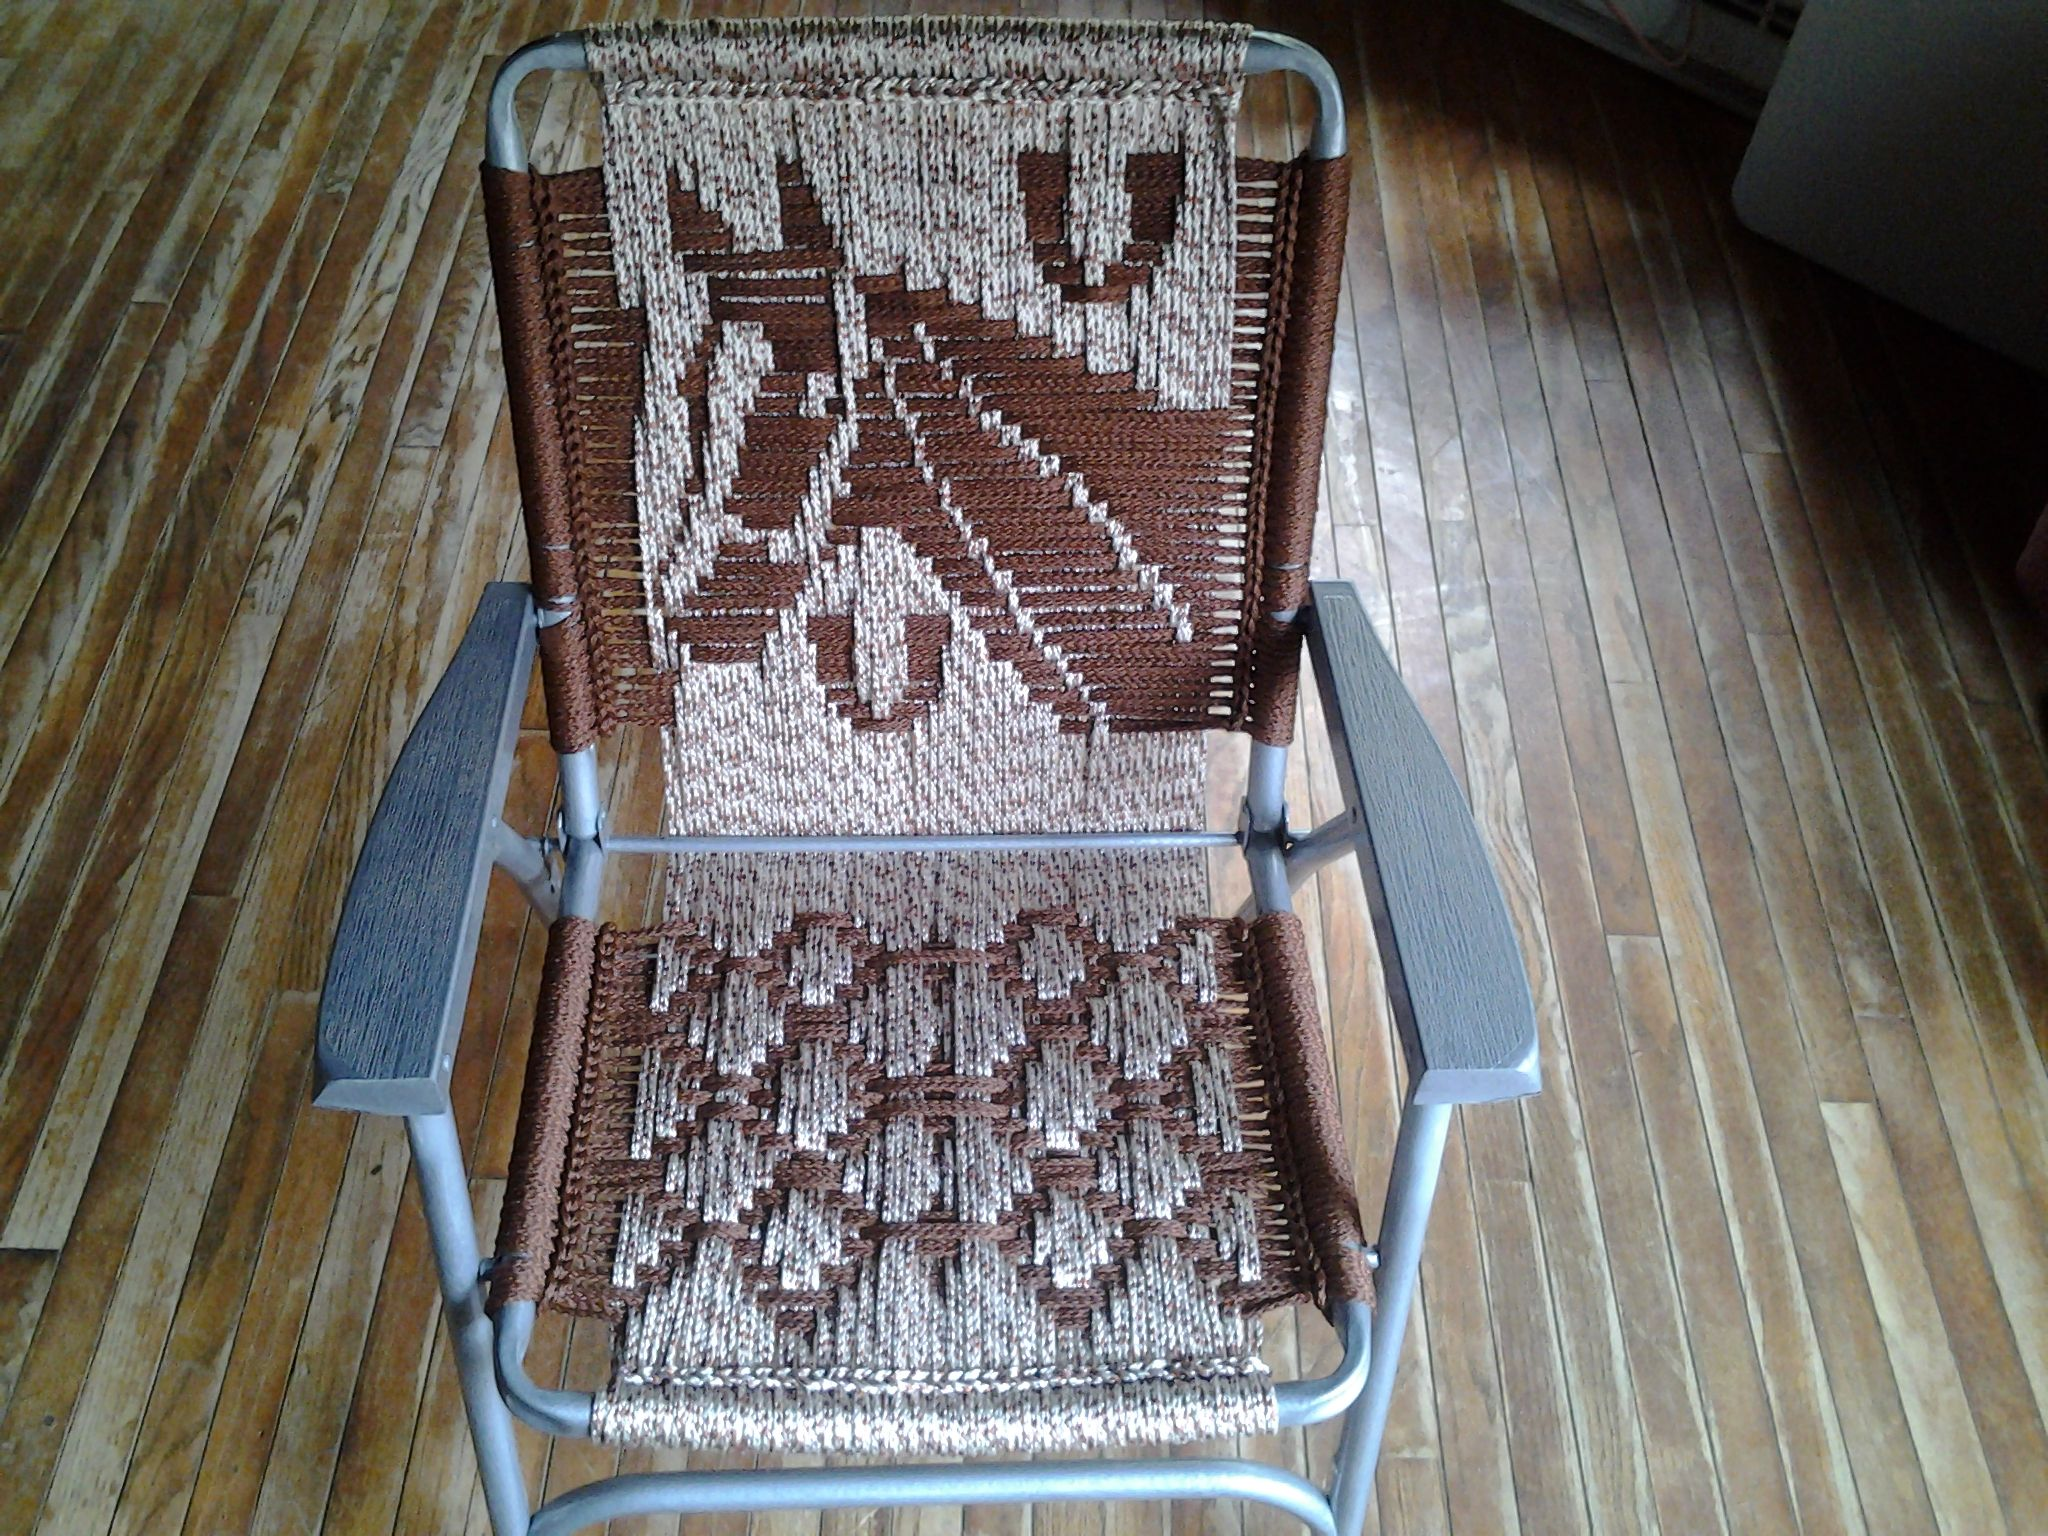 Macrame Lawn Chair per easy That s clever